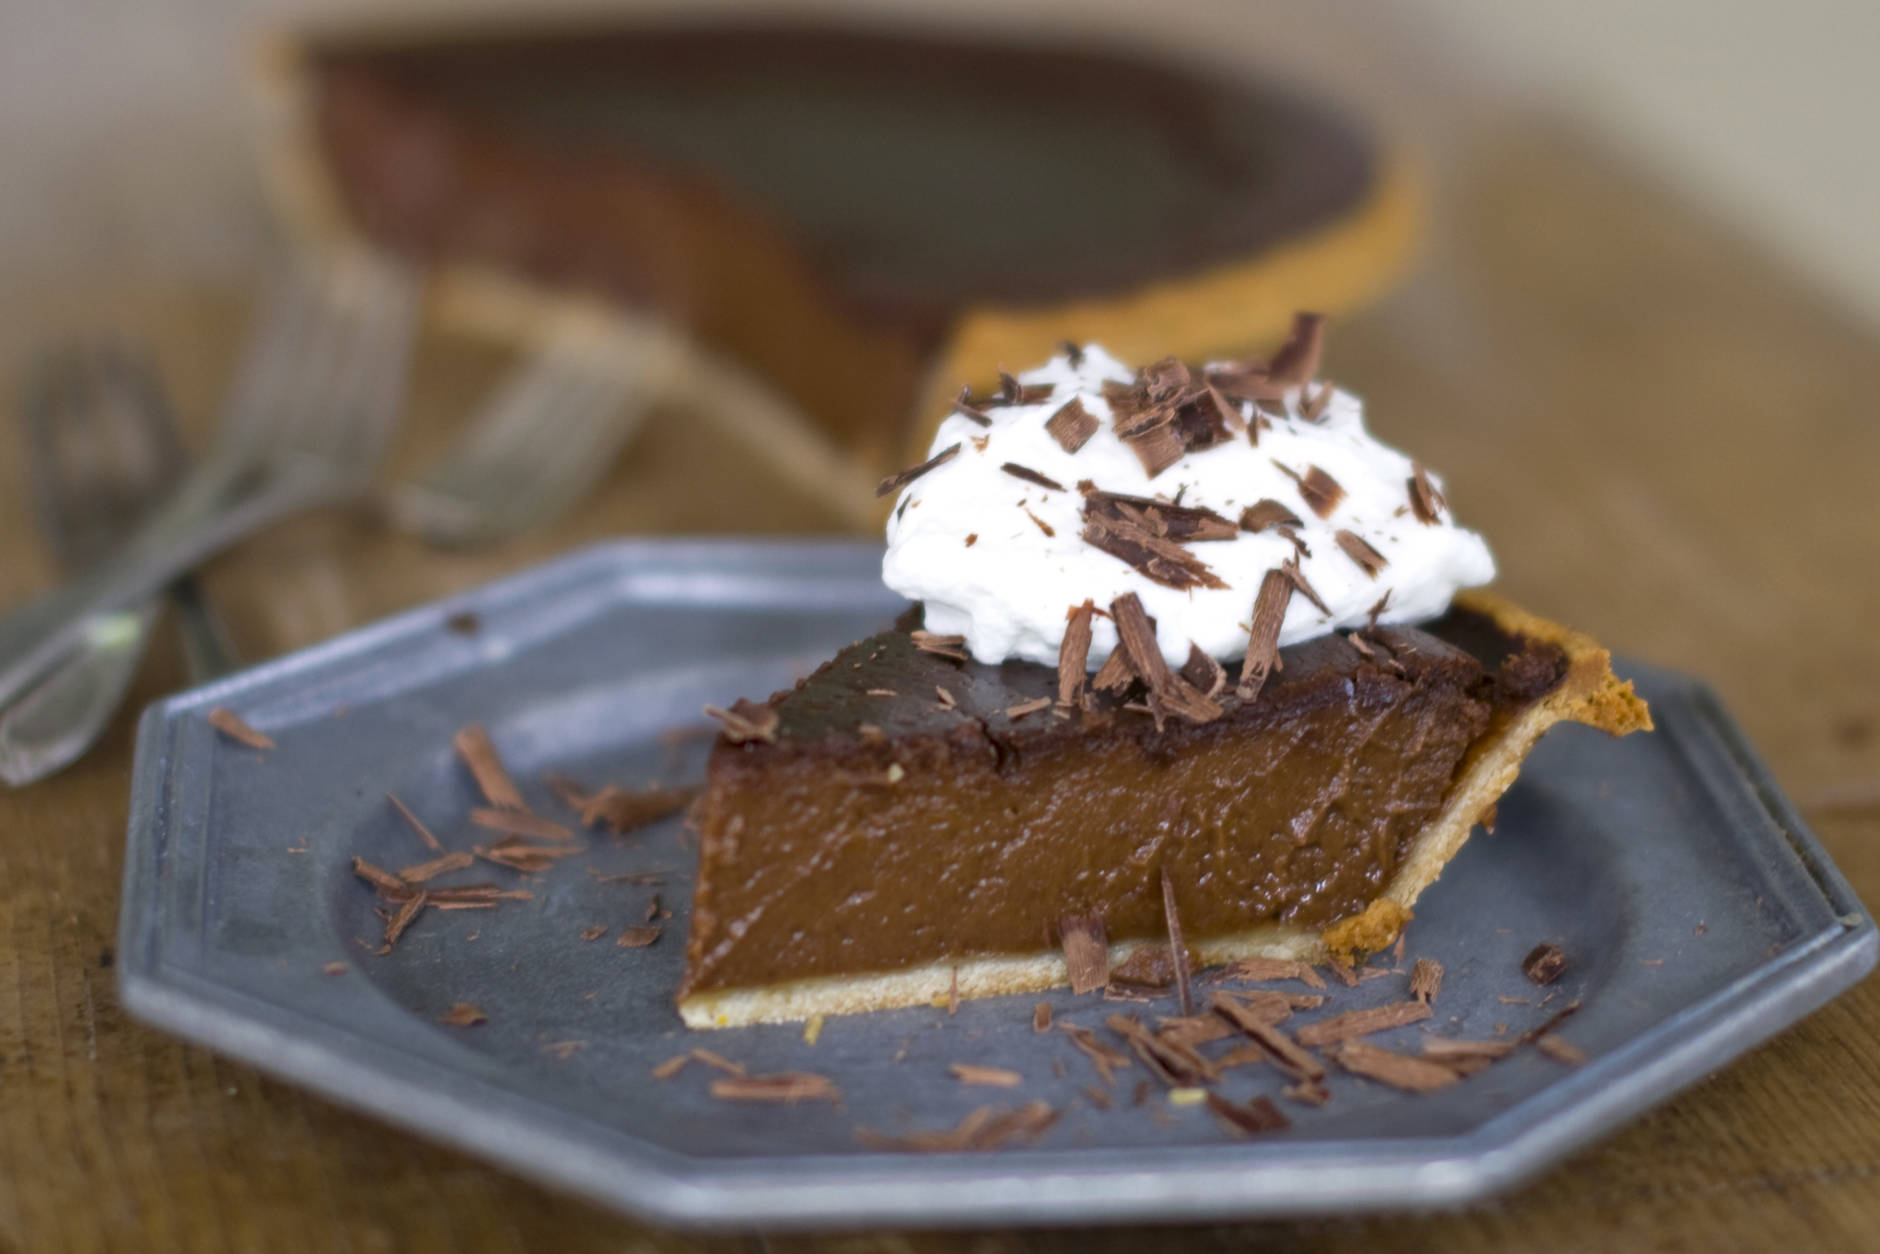 This Oct. 17, 2011 photo shows midnight pumpkin pie in Concord, N.H. This pumpkin pie recipe combines chocolate and pumpkin into a perfectly rich treat that honors tradition while satisfying the need for chocolate.   (AP Photo/Matthew Mead)